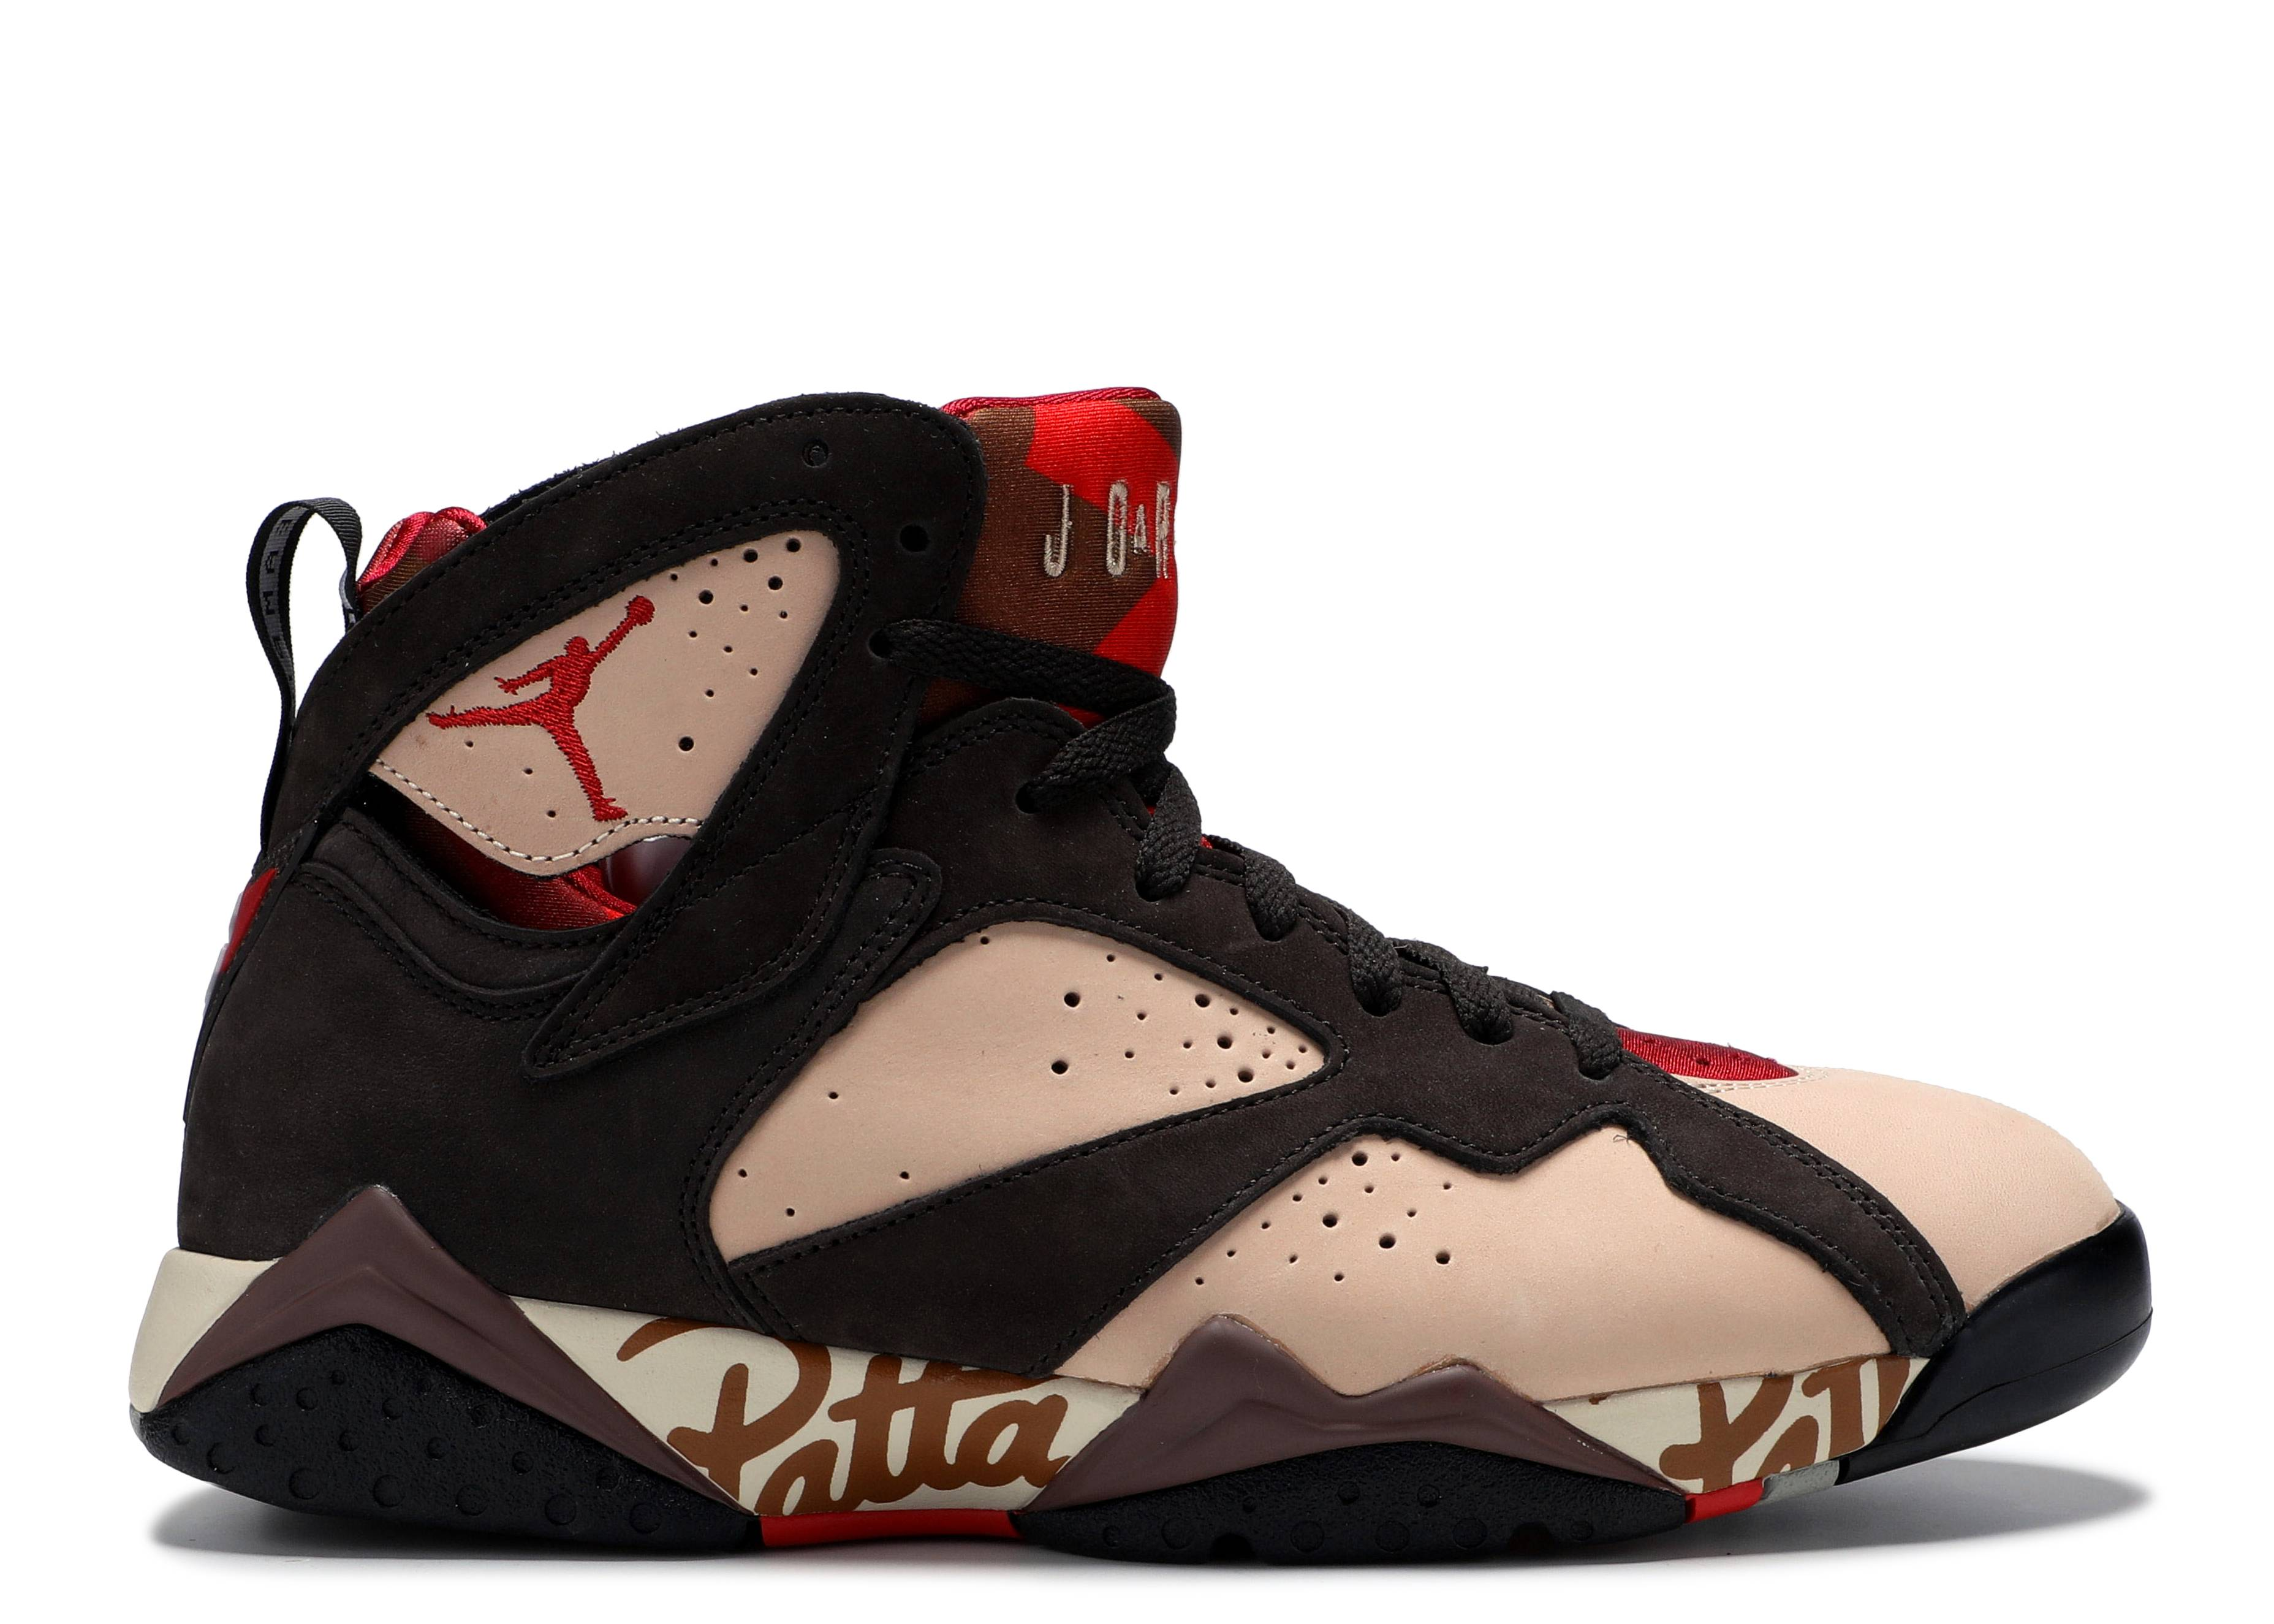 Retro Jordan Air Patta 7 Air tChrsQdx